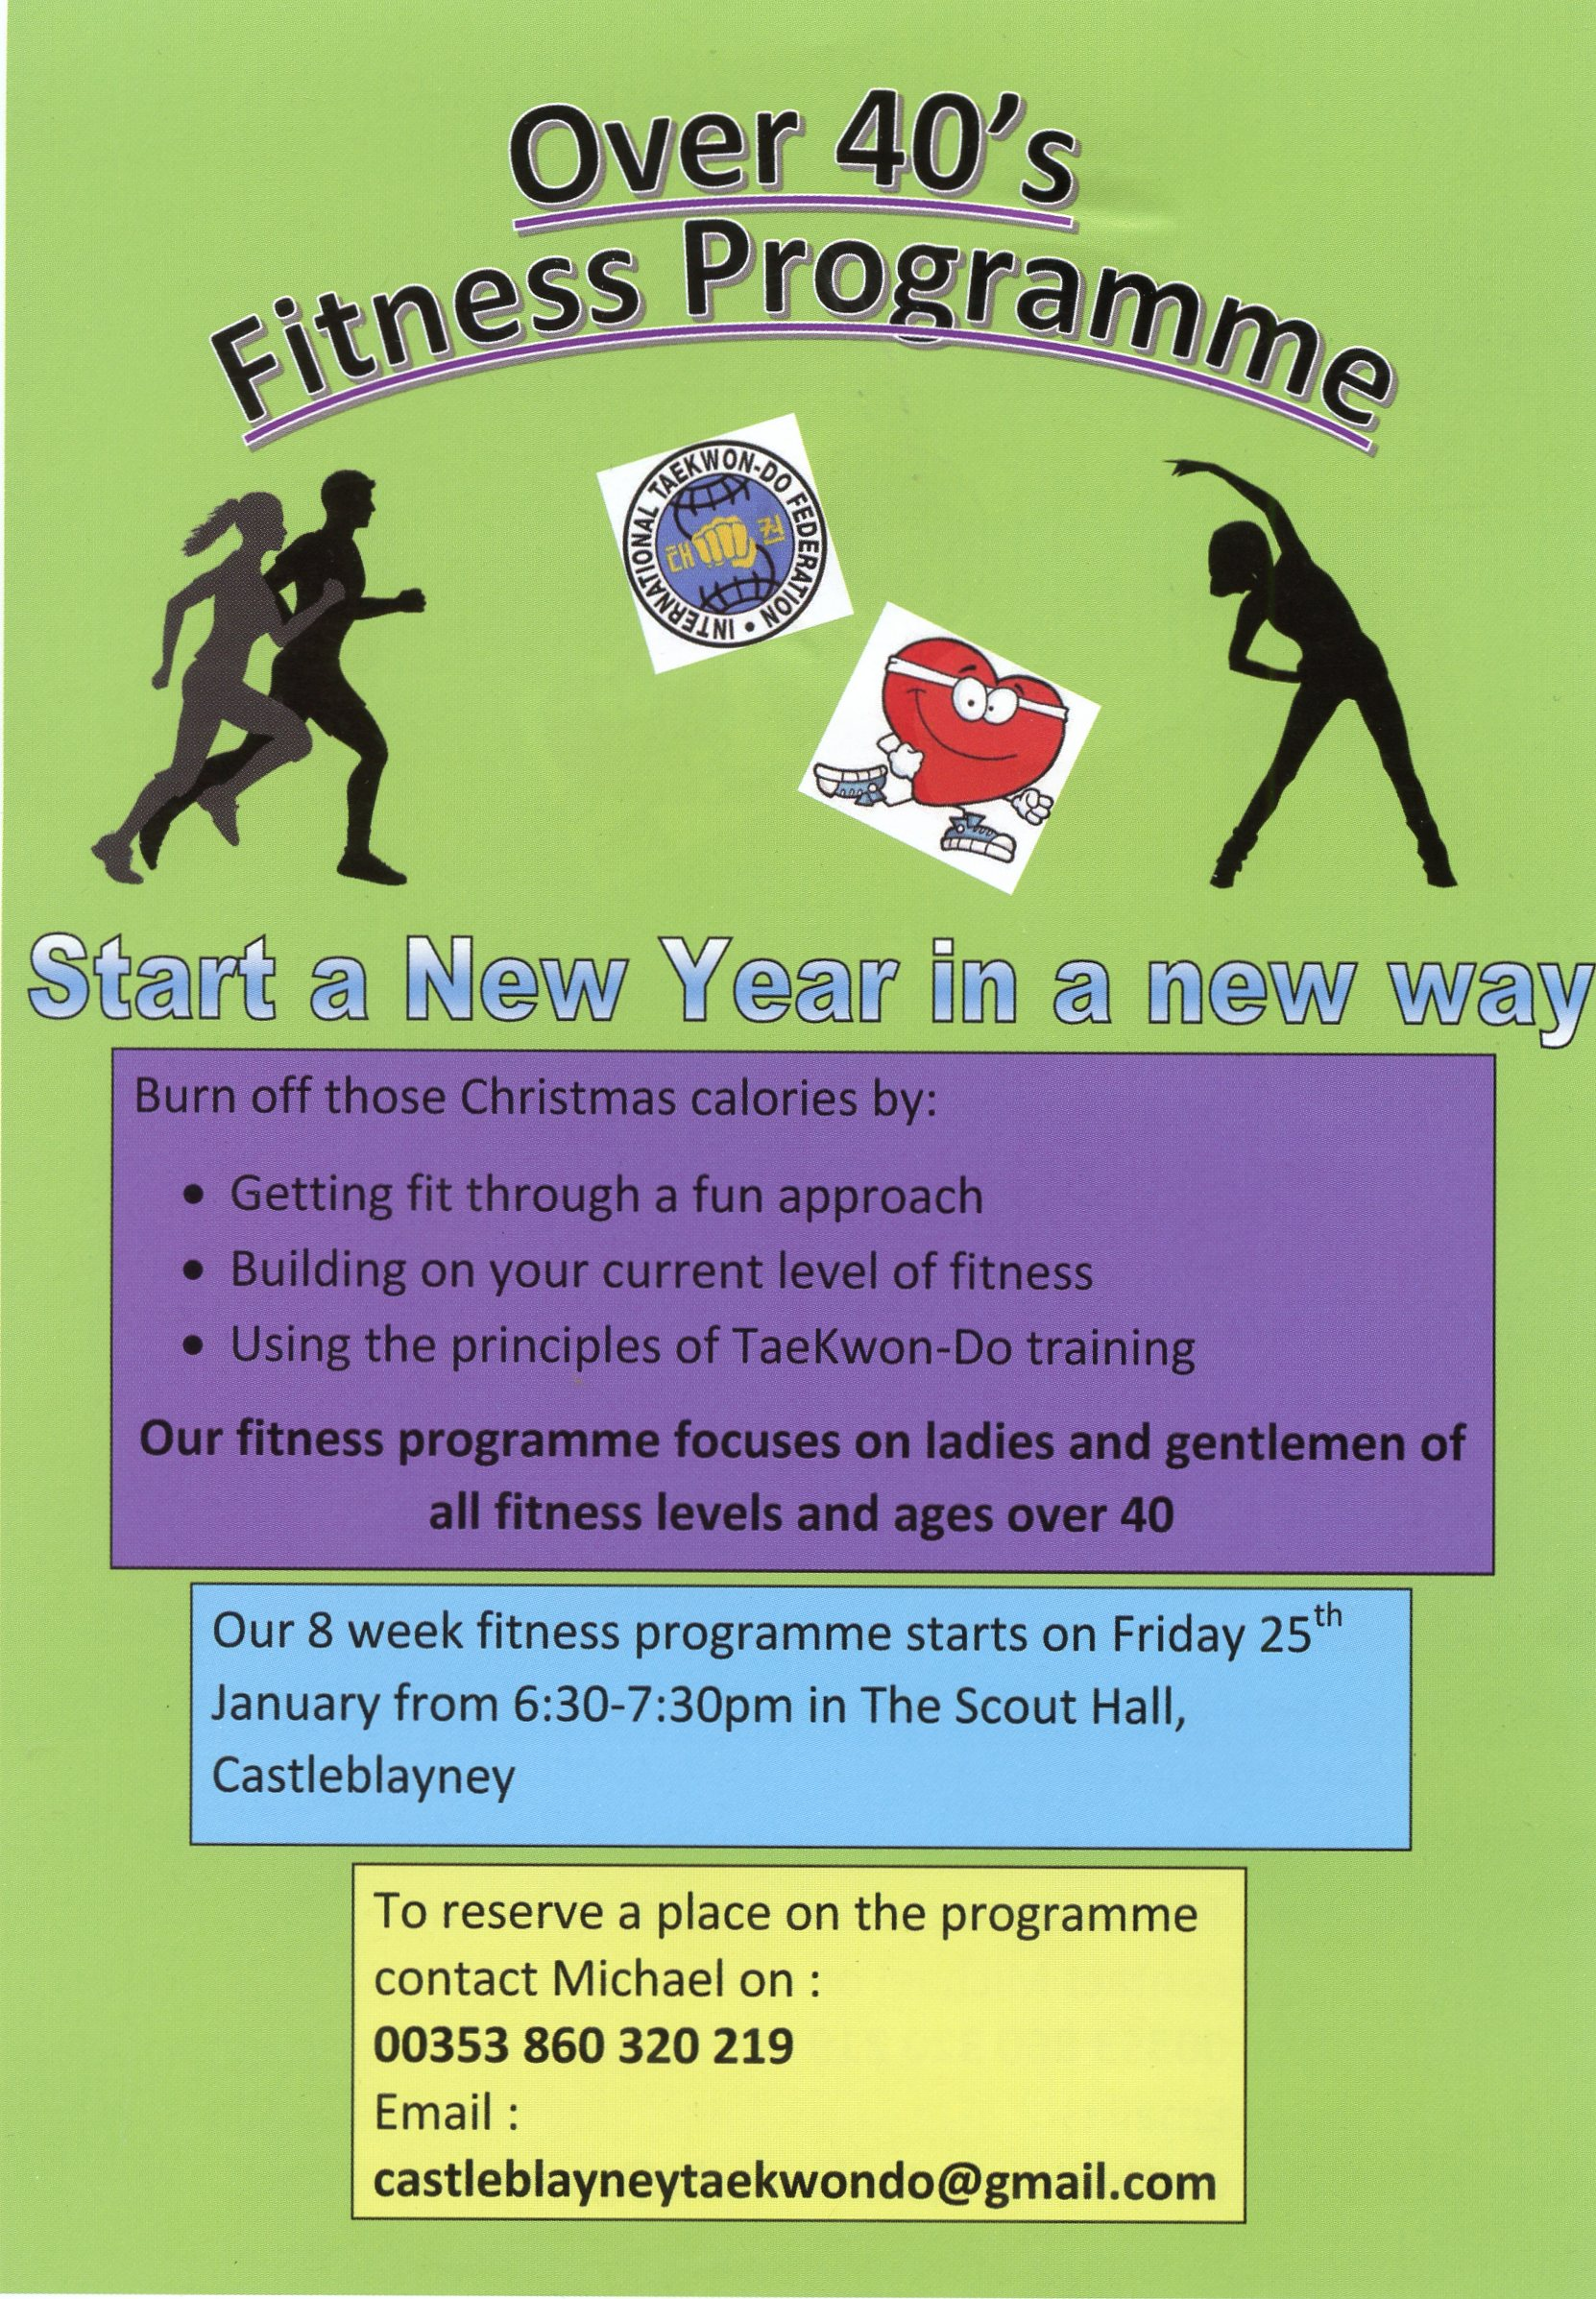 fc9729d3493 The 8 week fitness programme will start on Friday 25th January 6.30pm to  7.30pm in the Scout Hall